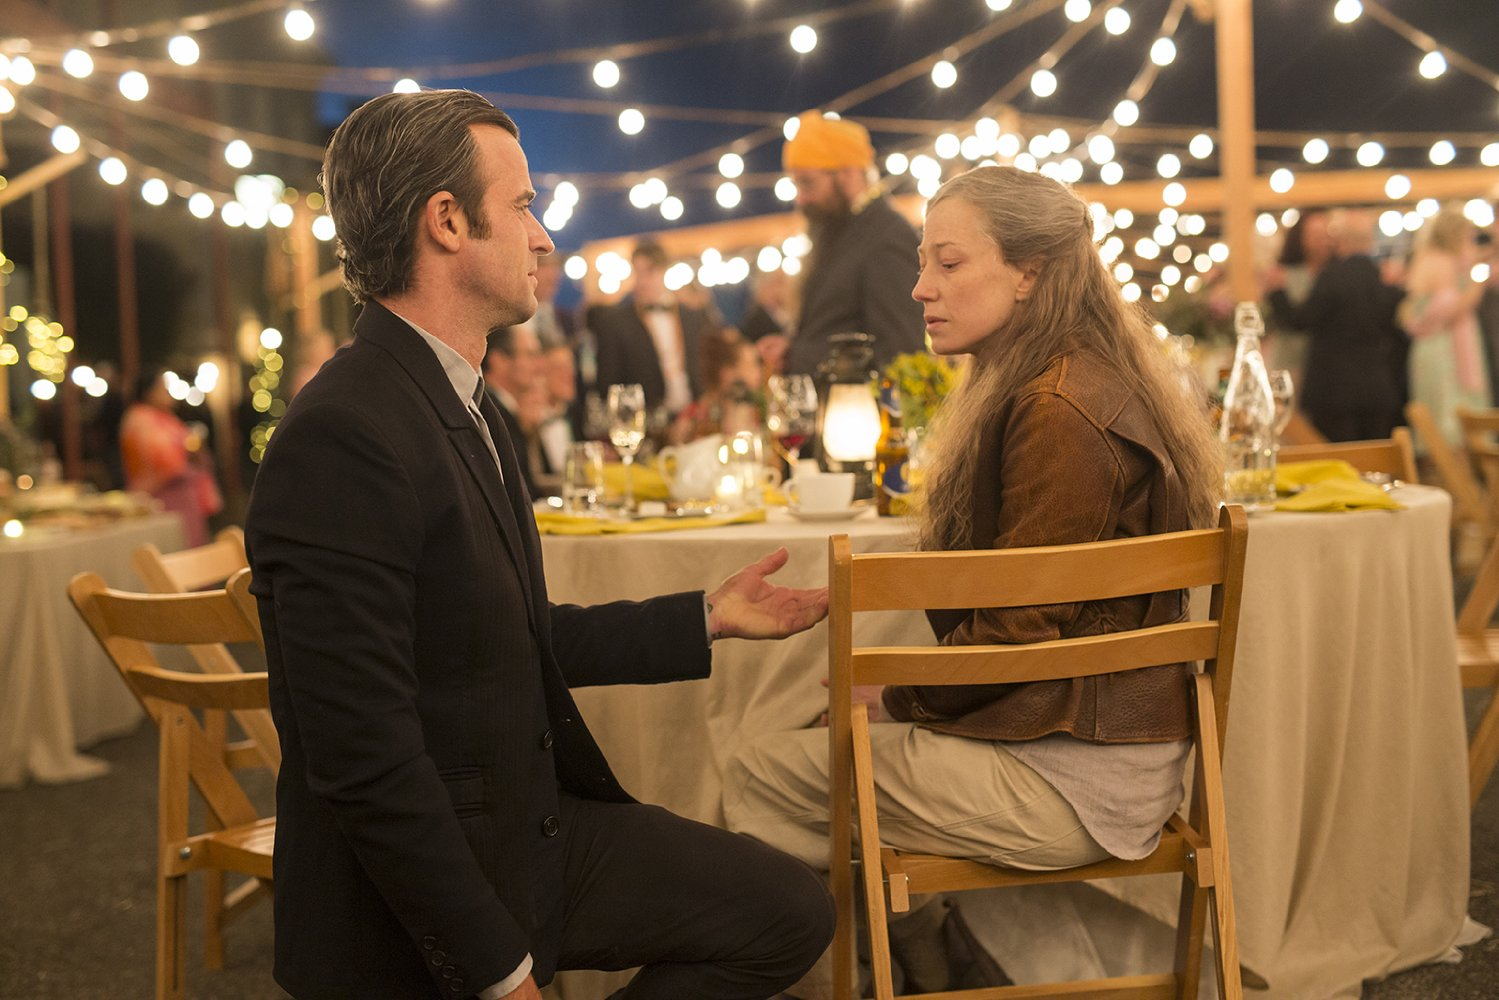 The Leftovers Season 3: What's it about? How can I watch it?